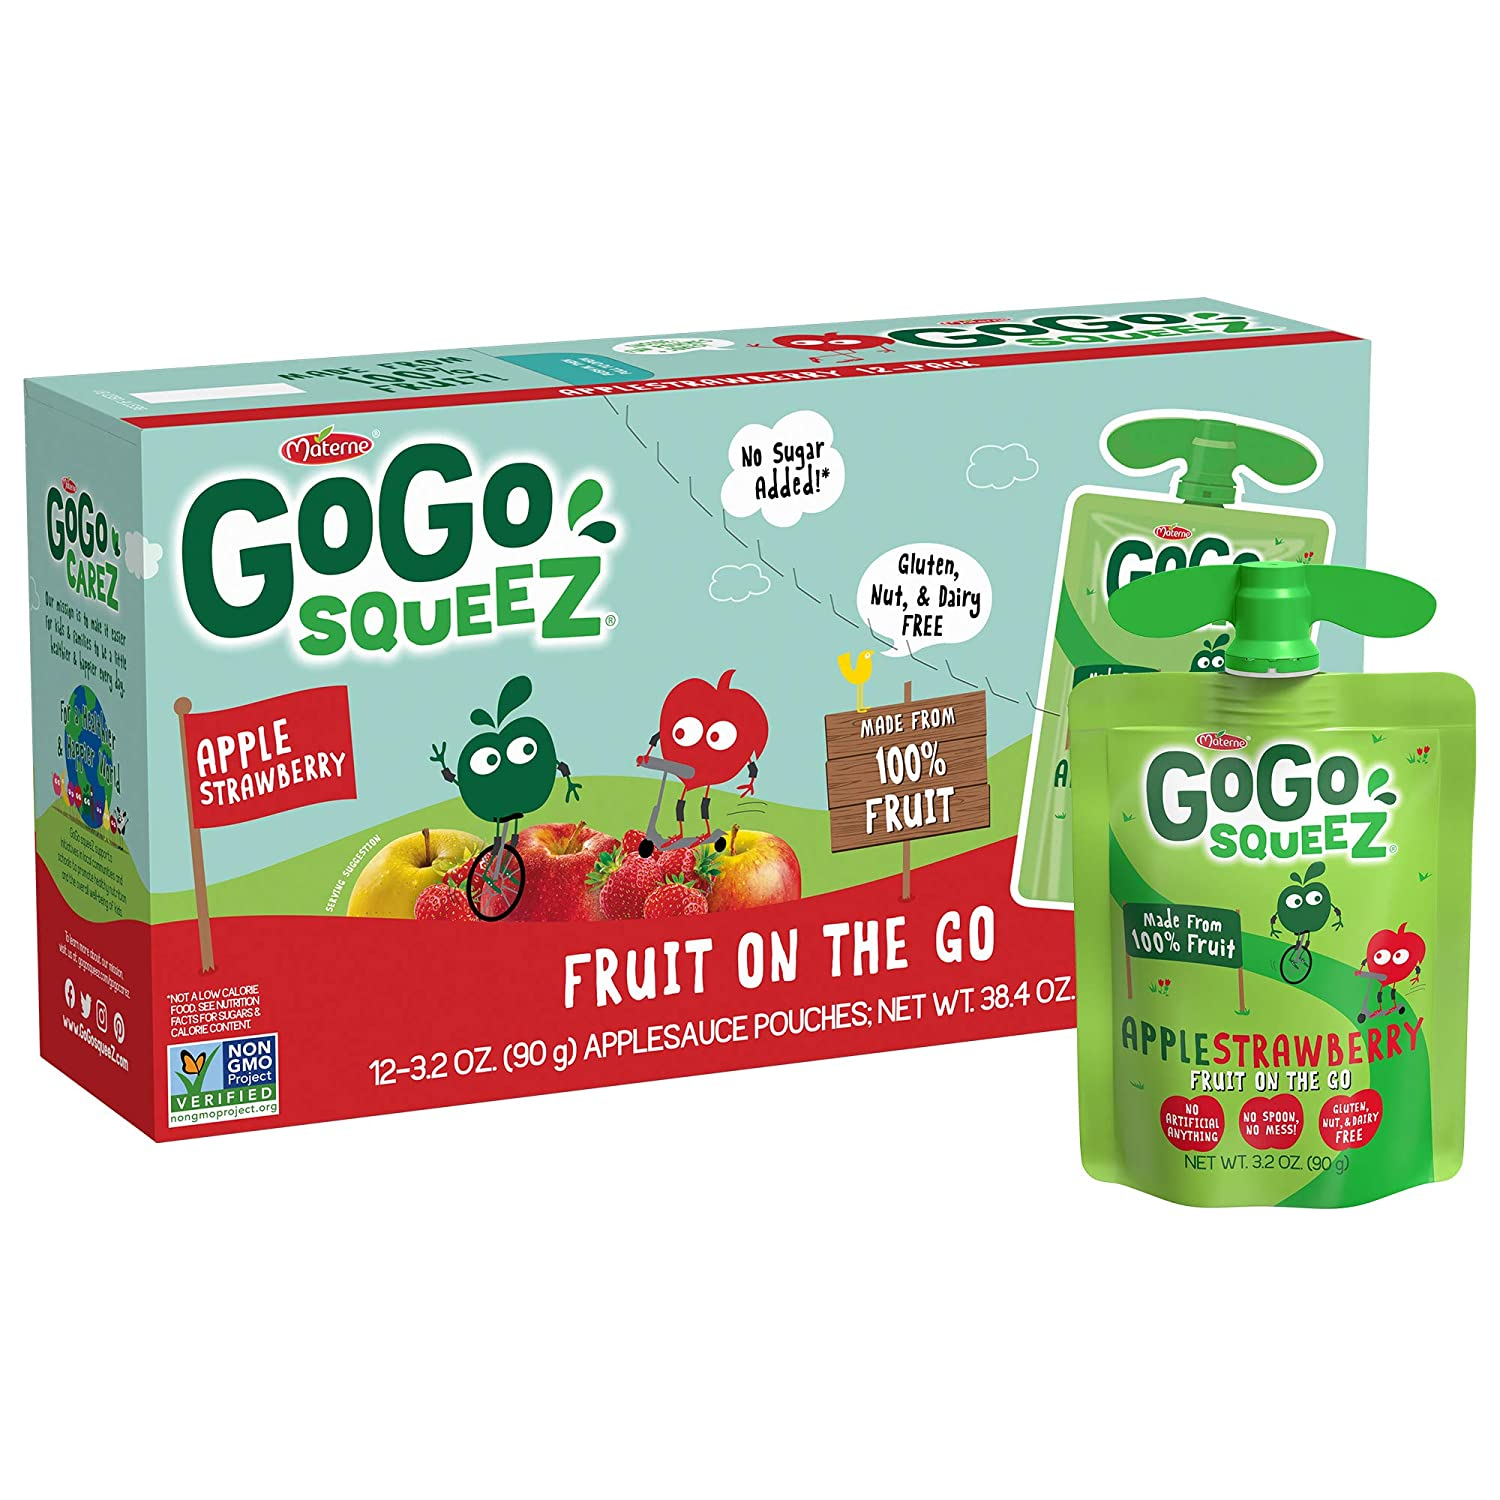 GoGo squeeZ Applesauce, Apple Strawberry, 3.2 Ounce (12 Pouches), Gluten Free, Vegan Friendly, Unsweetened Applesauce, Recloseable, BPA Free Pouches